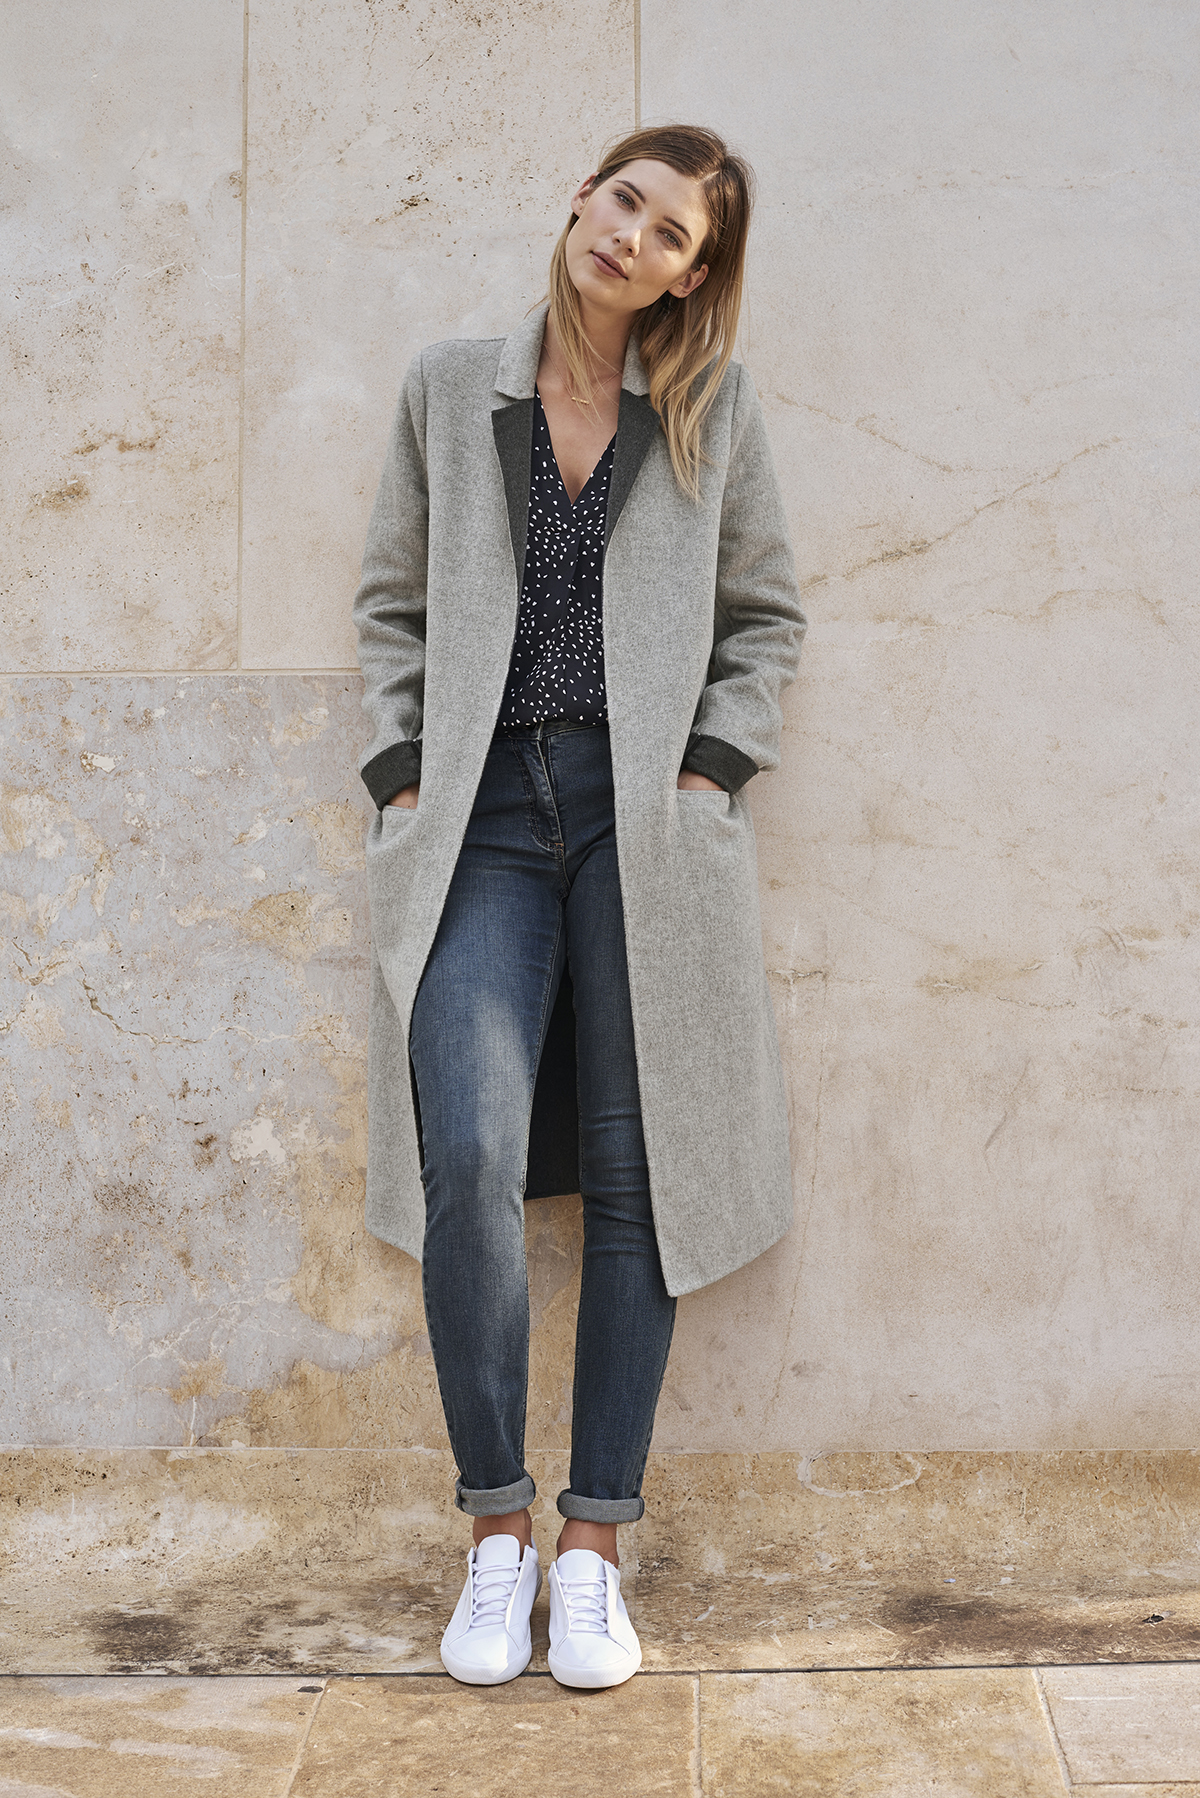 3 Smart Fashion Tips for Tall Women